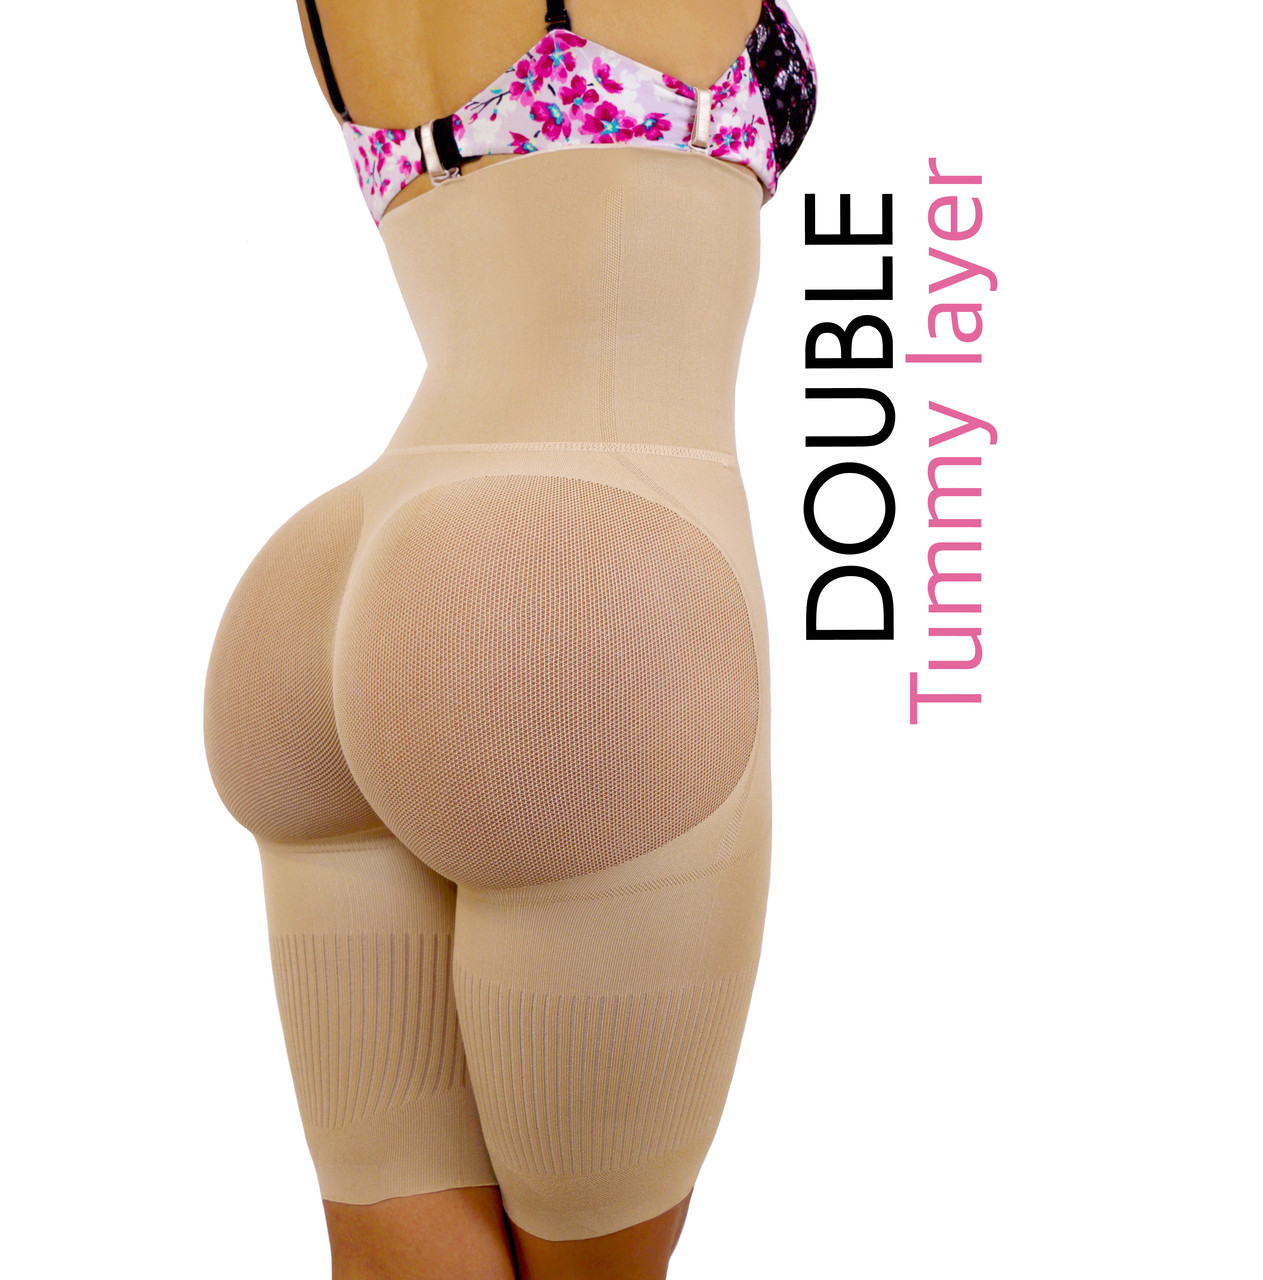 e72b08242f542 Happy Butt N°7 Double Tummy Layer - YAHAIRA INC